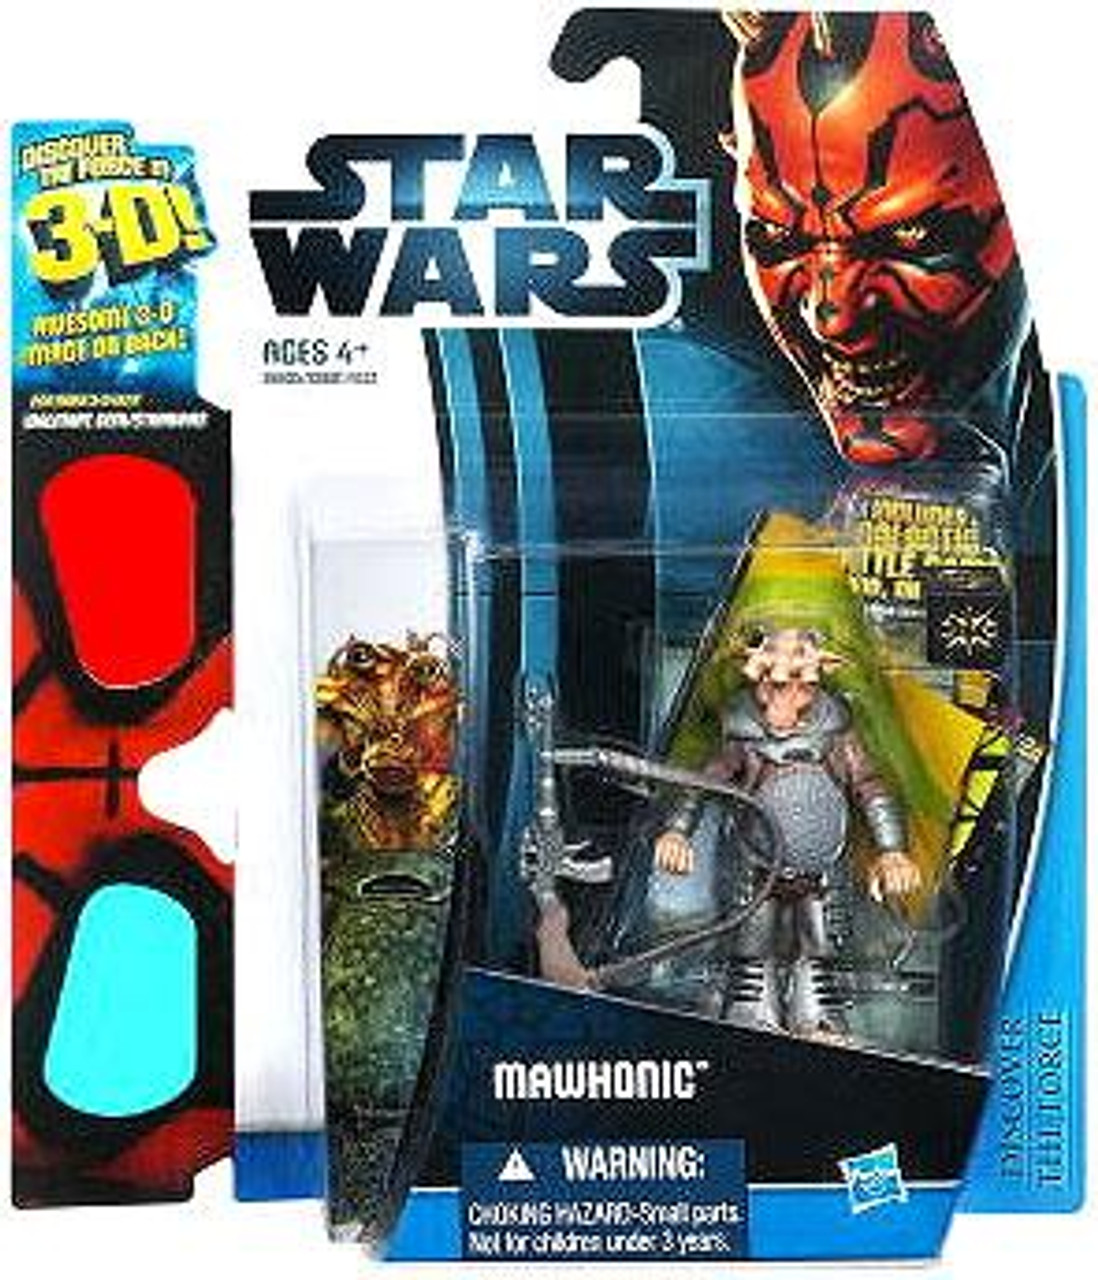 Star Wars The Phantom Menace Discover the Force 2012 Mawhonic Exclusive Action Figure